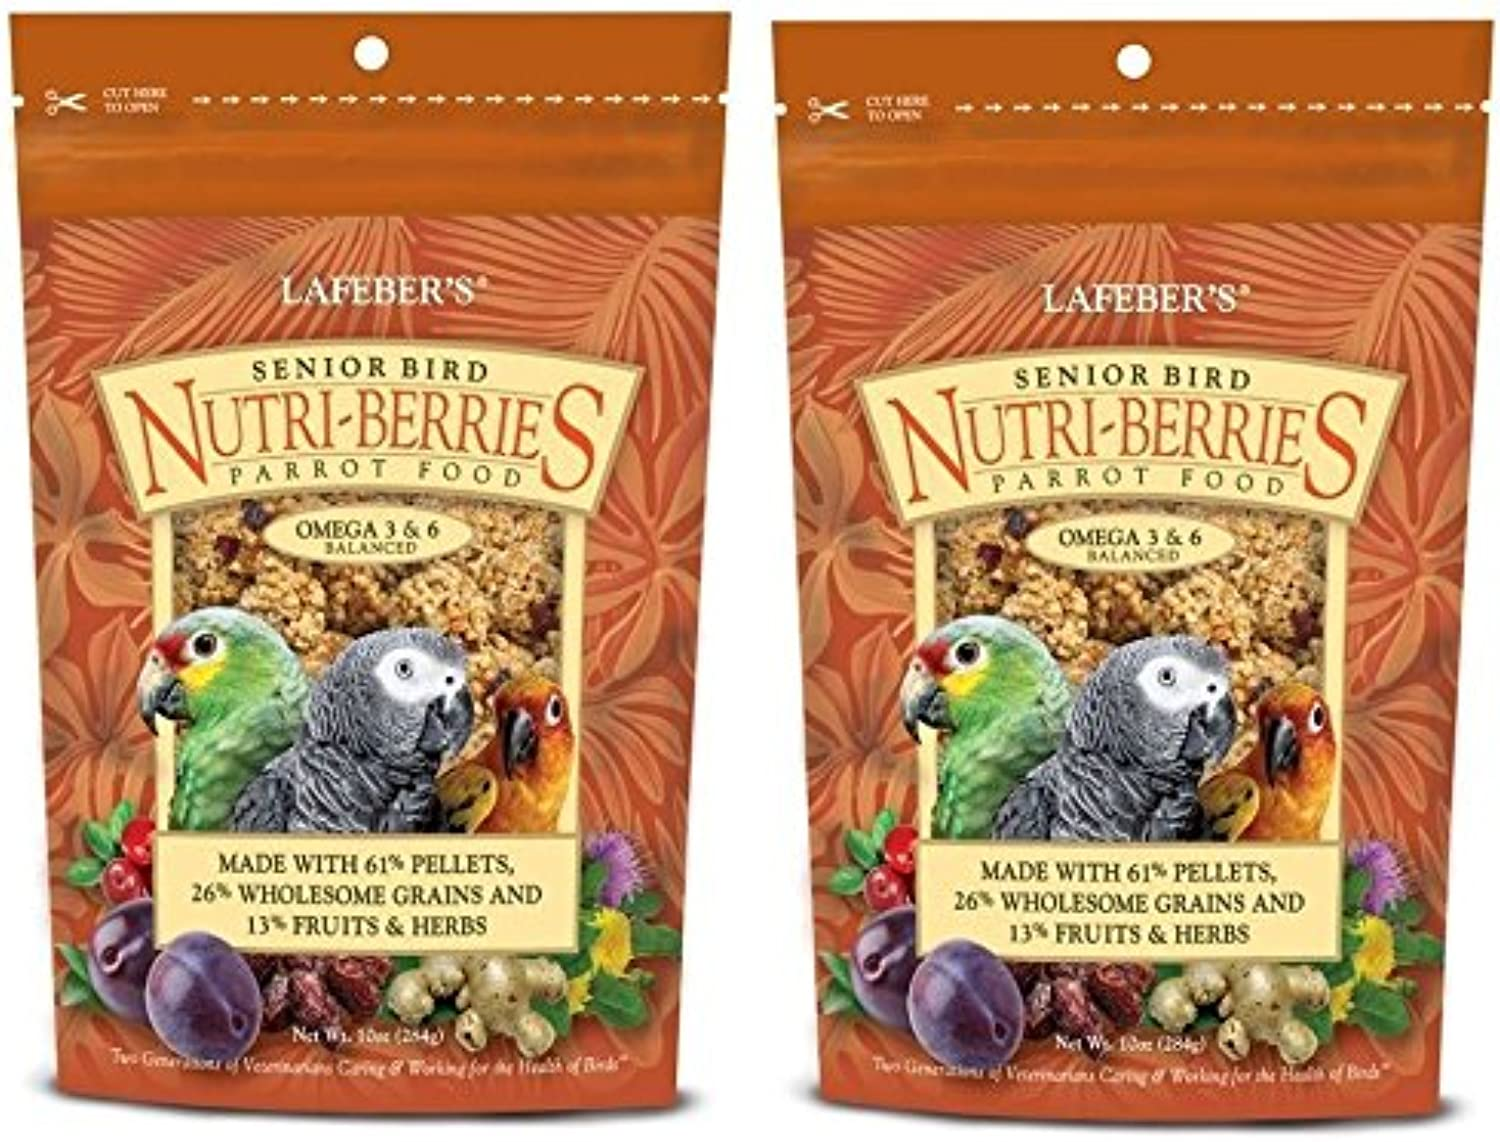 (2 Pack) Lafebers Senior Bird NutriBerries Bird Treat and Parred Food